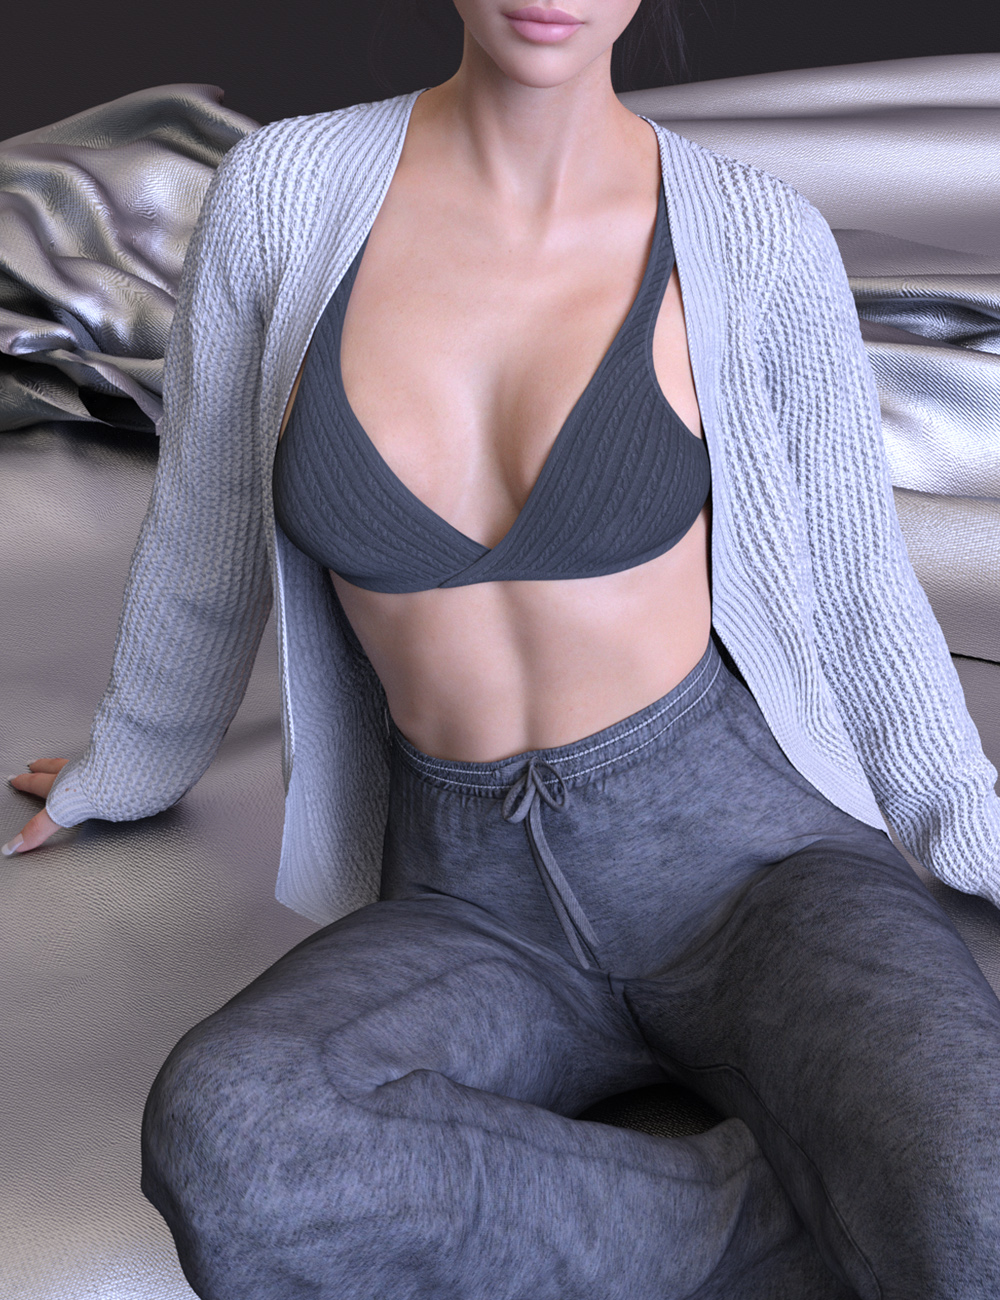 X-Fashion Lazy Outfit for Genesis 8 and 8.1 Females by: xtrart-3d, 3D Models by Daz 3D